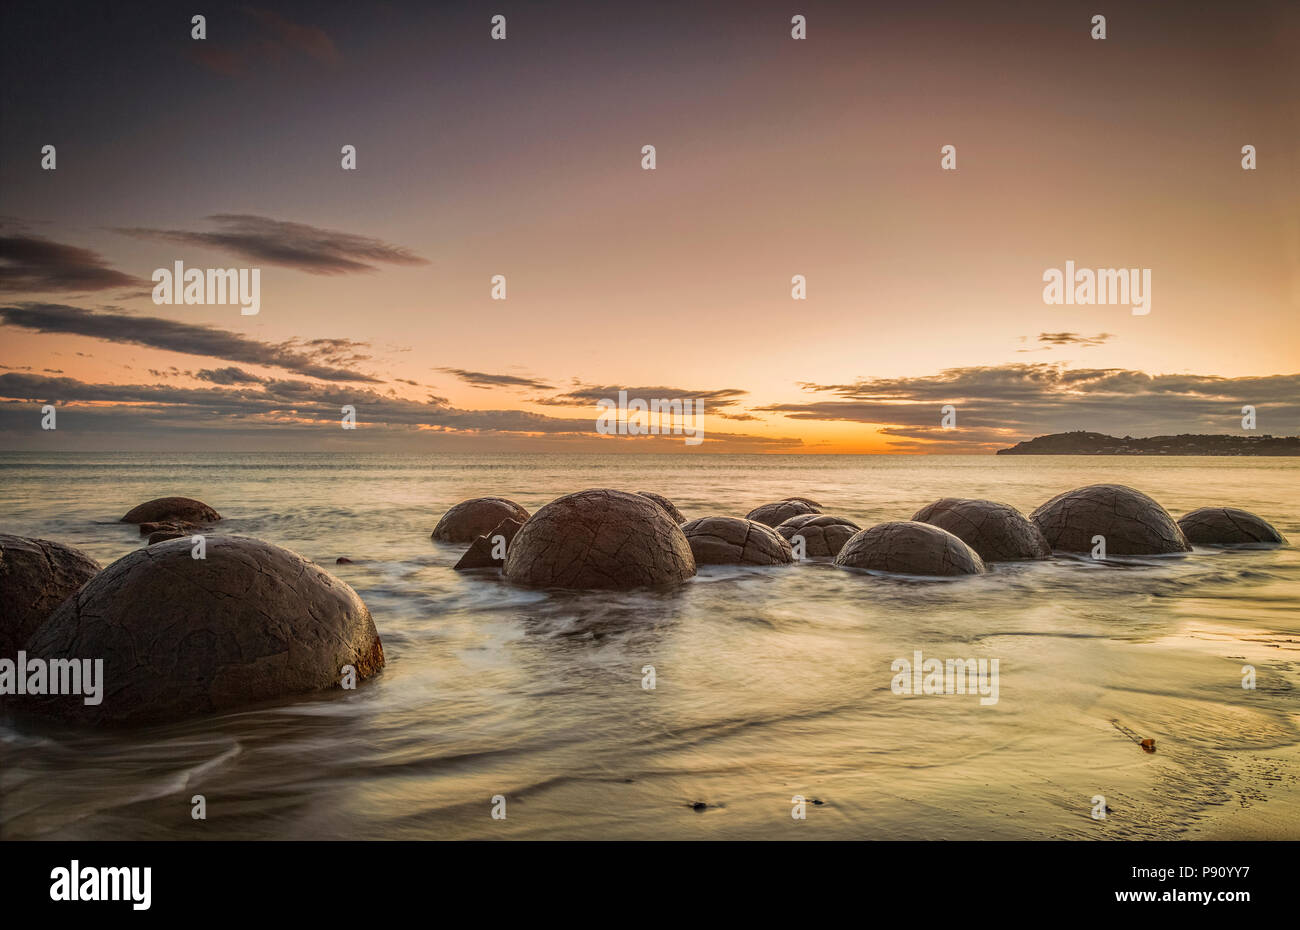 The famous Moeraki Boulders, an icon of New Zealand, in Otago, at sunrise. - Stock Image